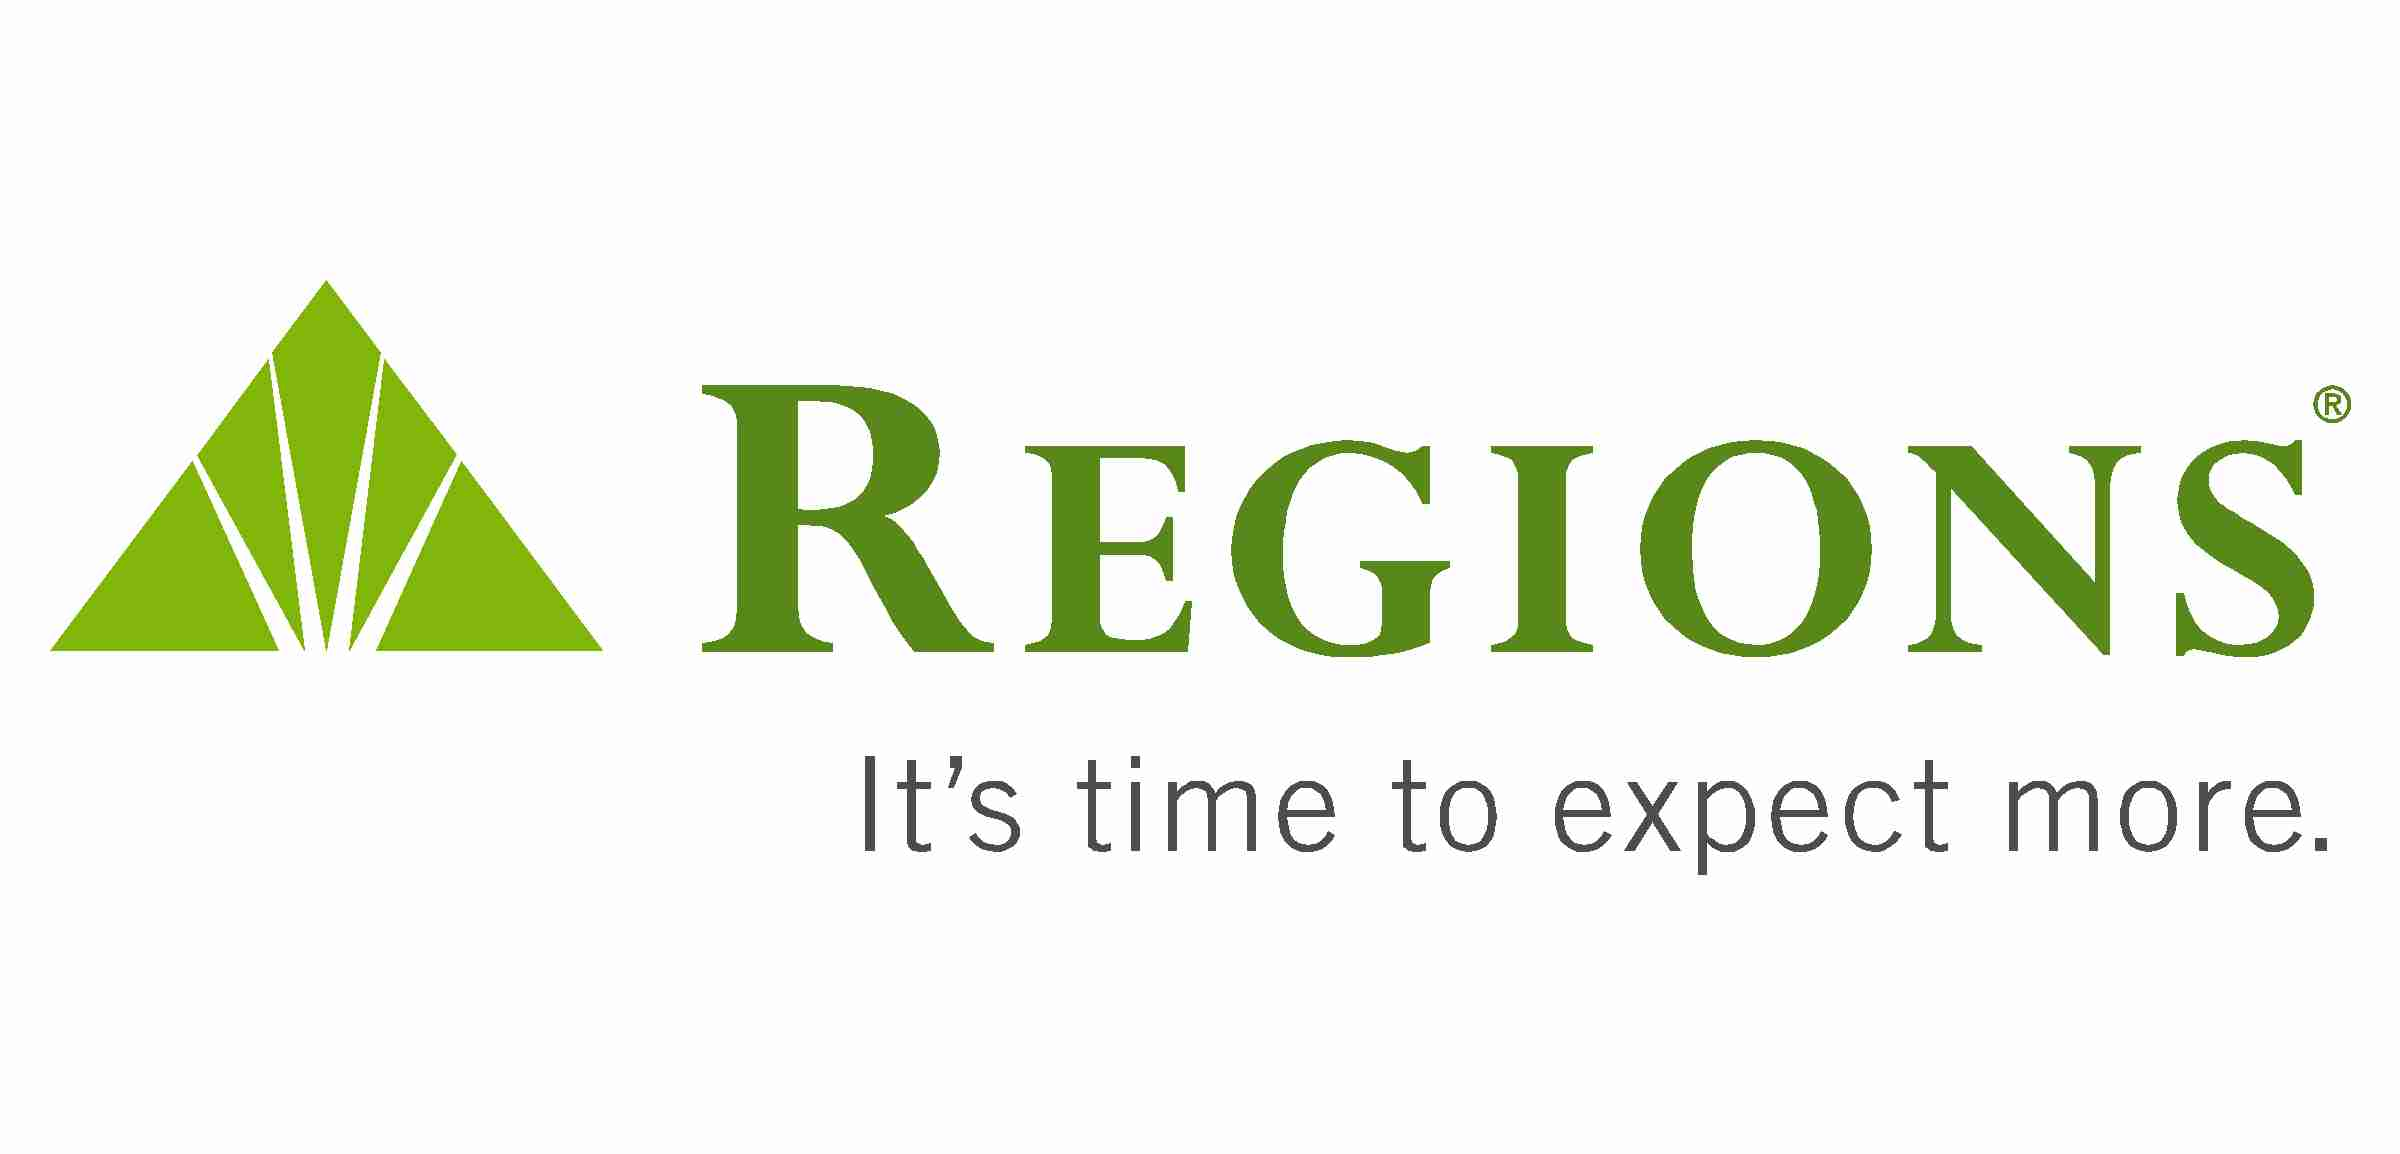 Spelman College & Regions Bank – A Failure To Disclose |